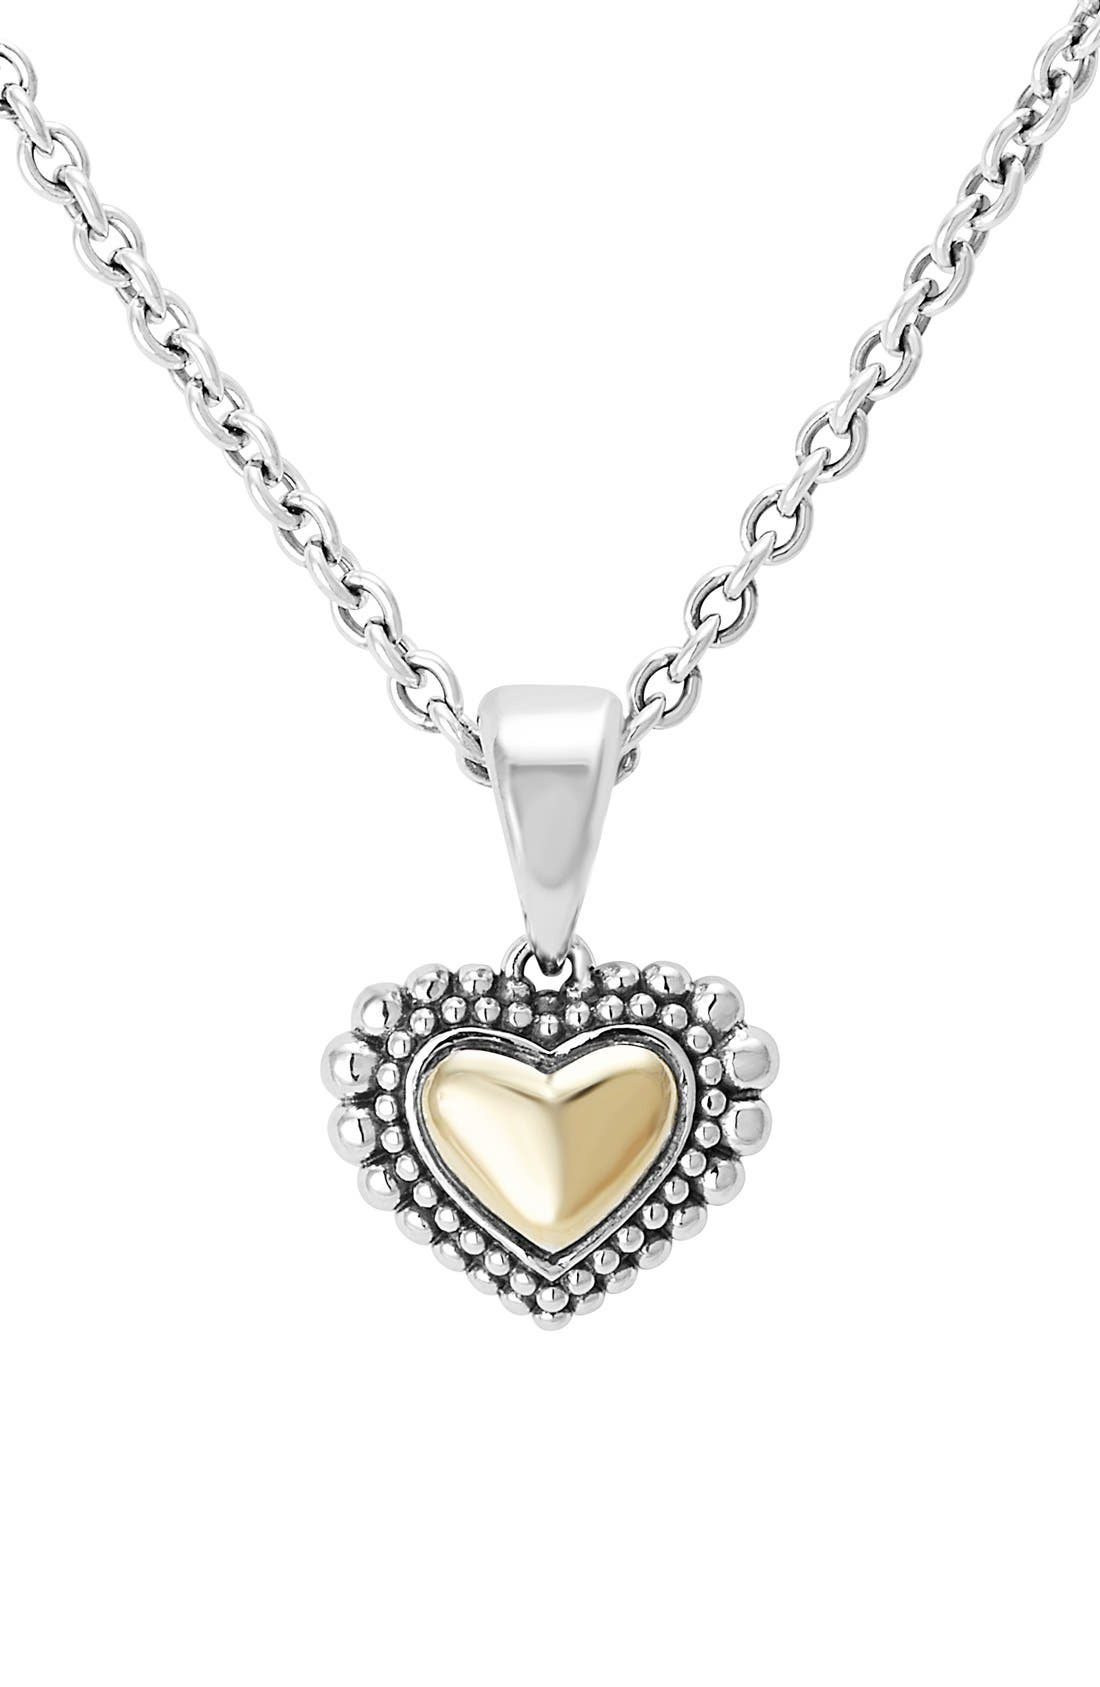 Two-Tone Heart Pendant Necklace,                         Main,                         color, Silver/ Gold